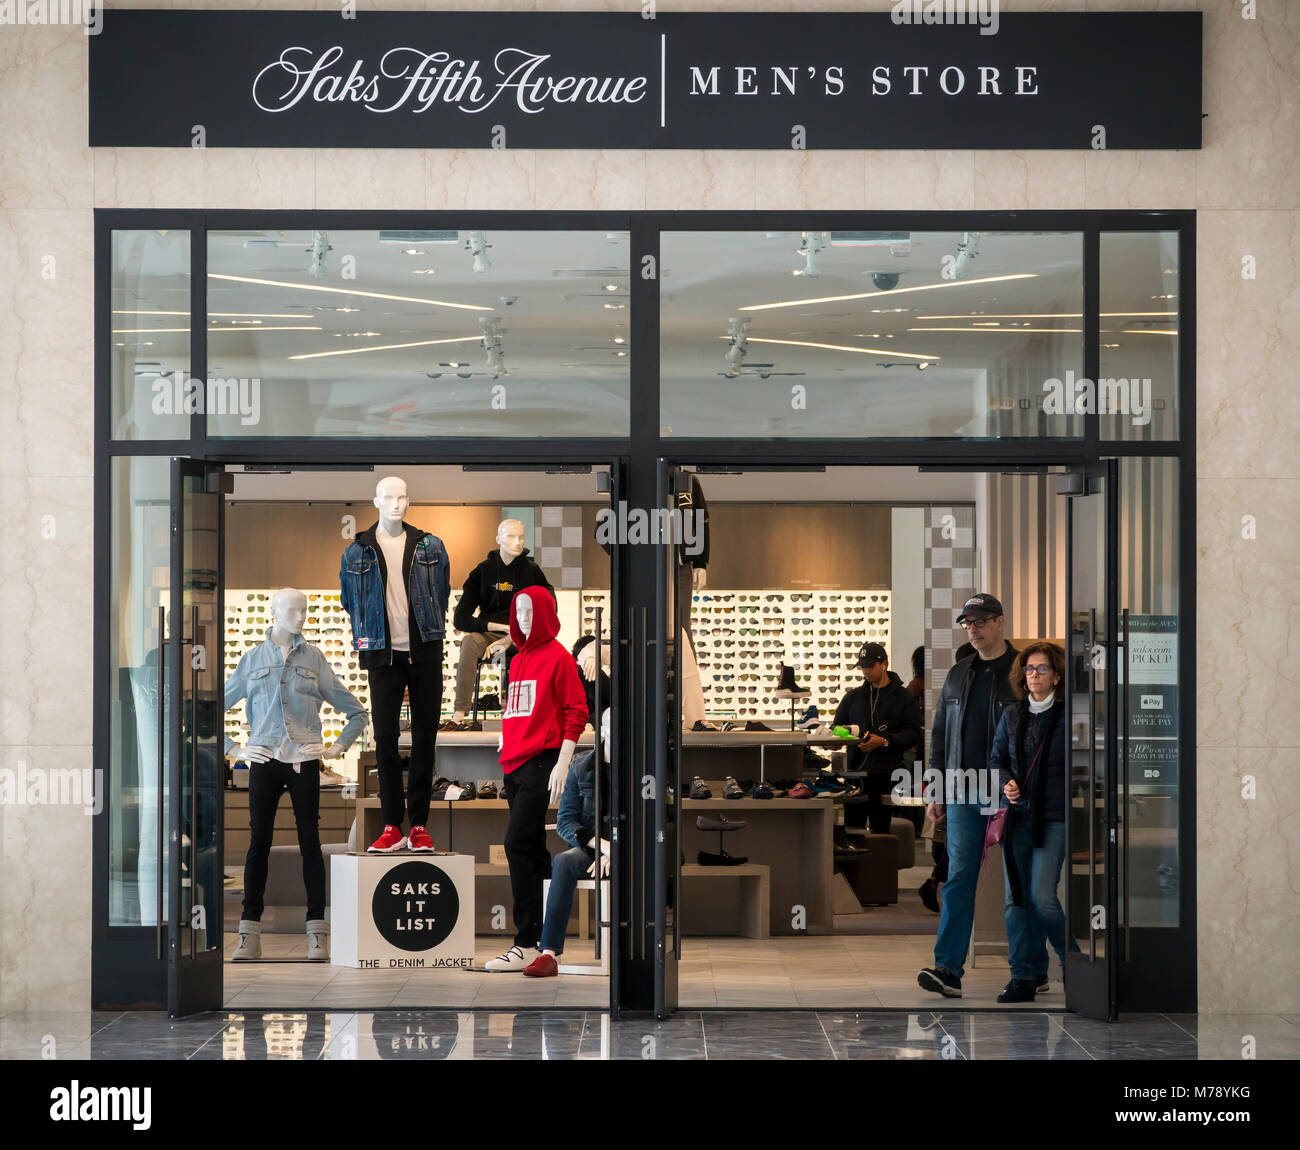 The Saks Fifth Avenue Men's Store in the Brookfield Place mall in New York on Saturday, March 3, 2018. As Nordstrom - Stock Image